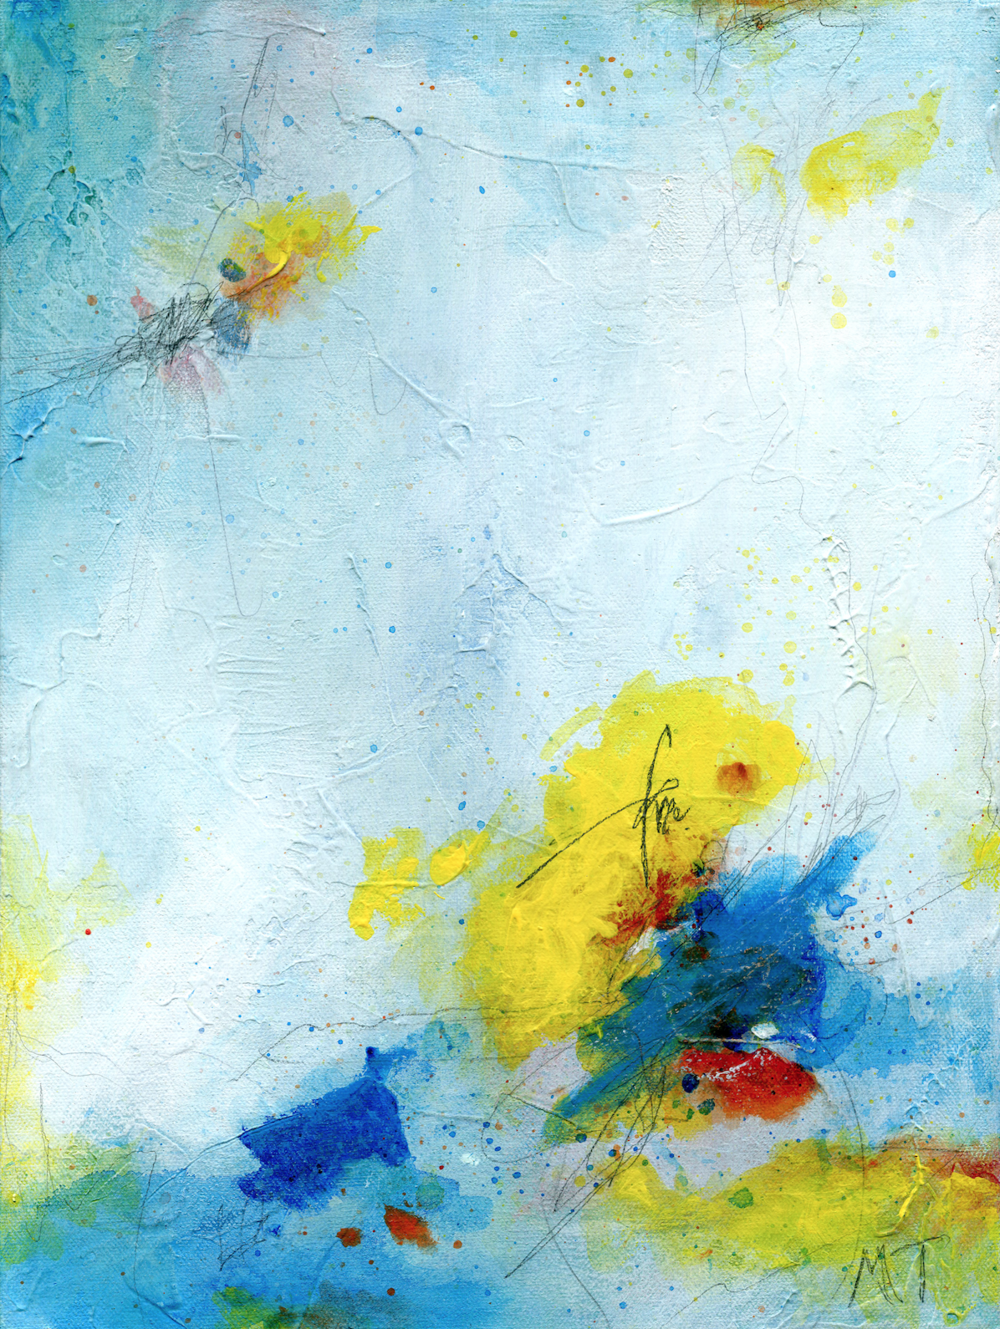 abstract-freedom-painting-mandy-thompson.jpg